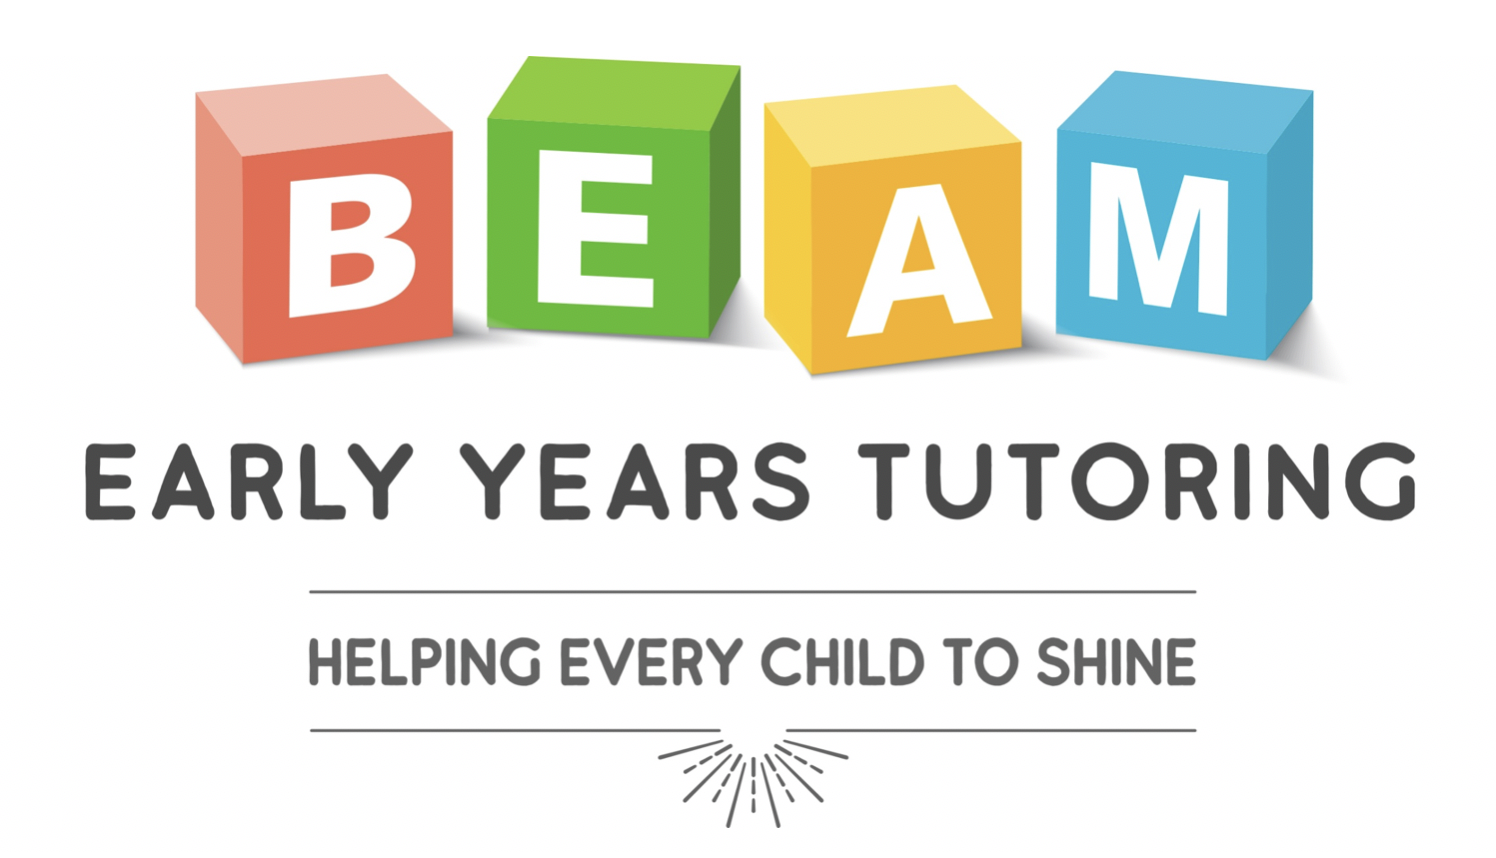 BEAM - Early Years Tutoring